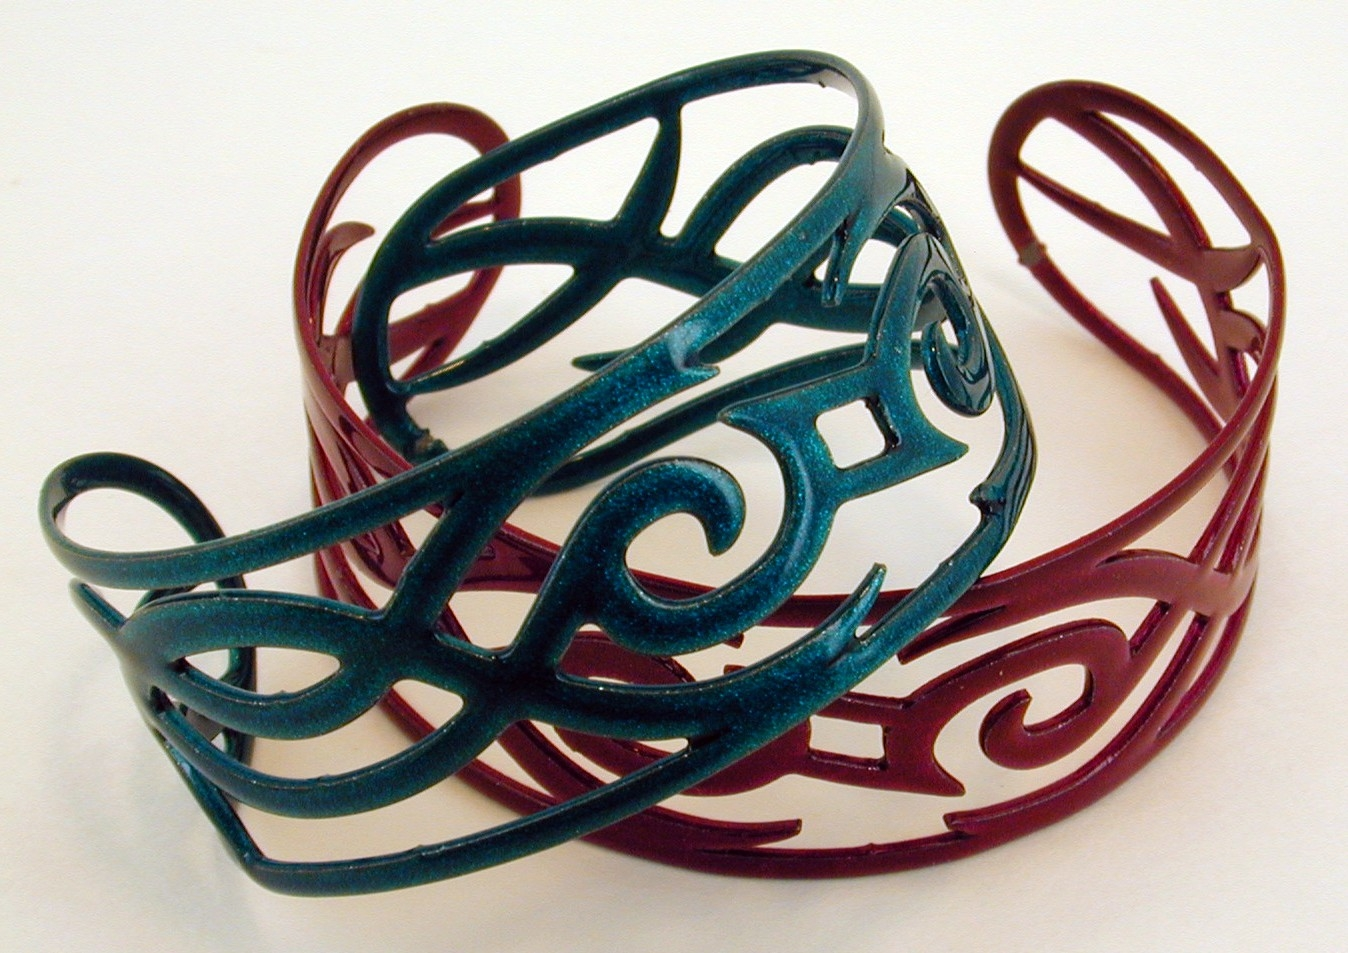 Krome Brand Bangles by Paul Michael Design at CustomMade.com